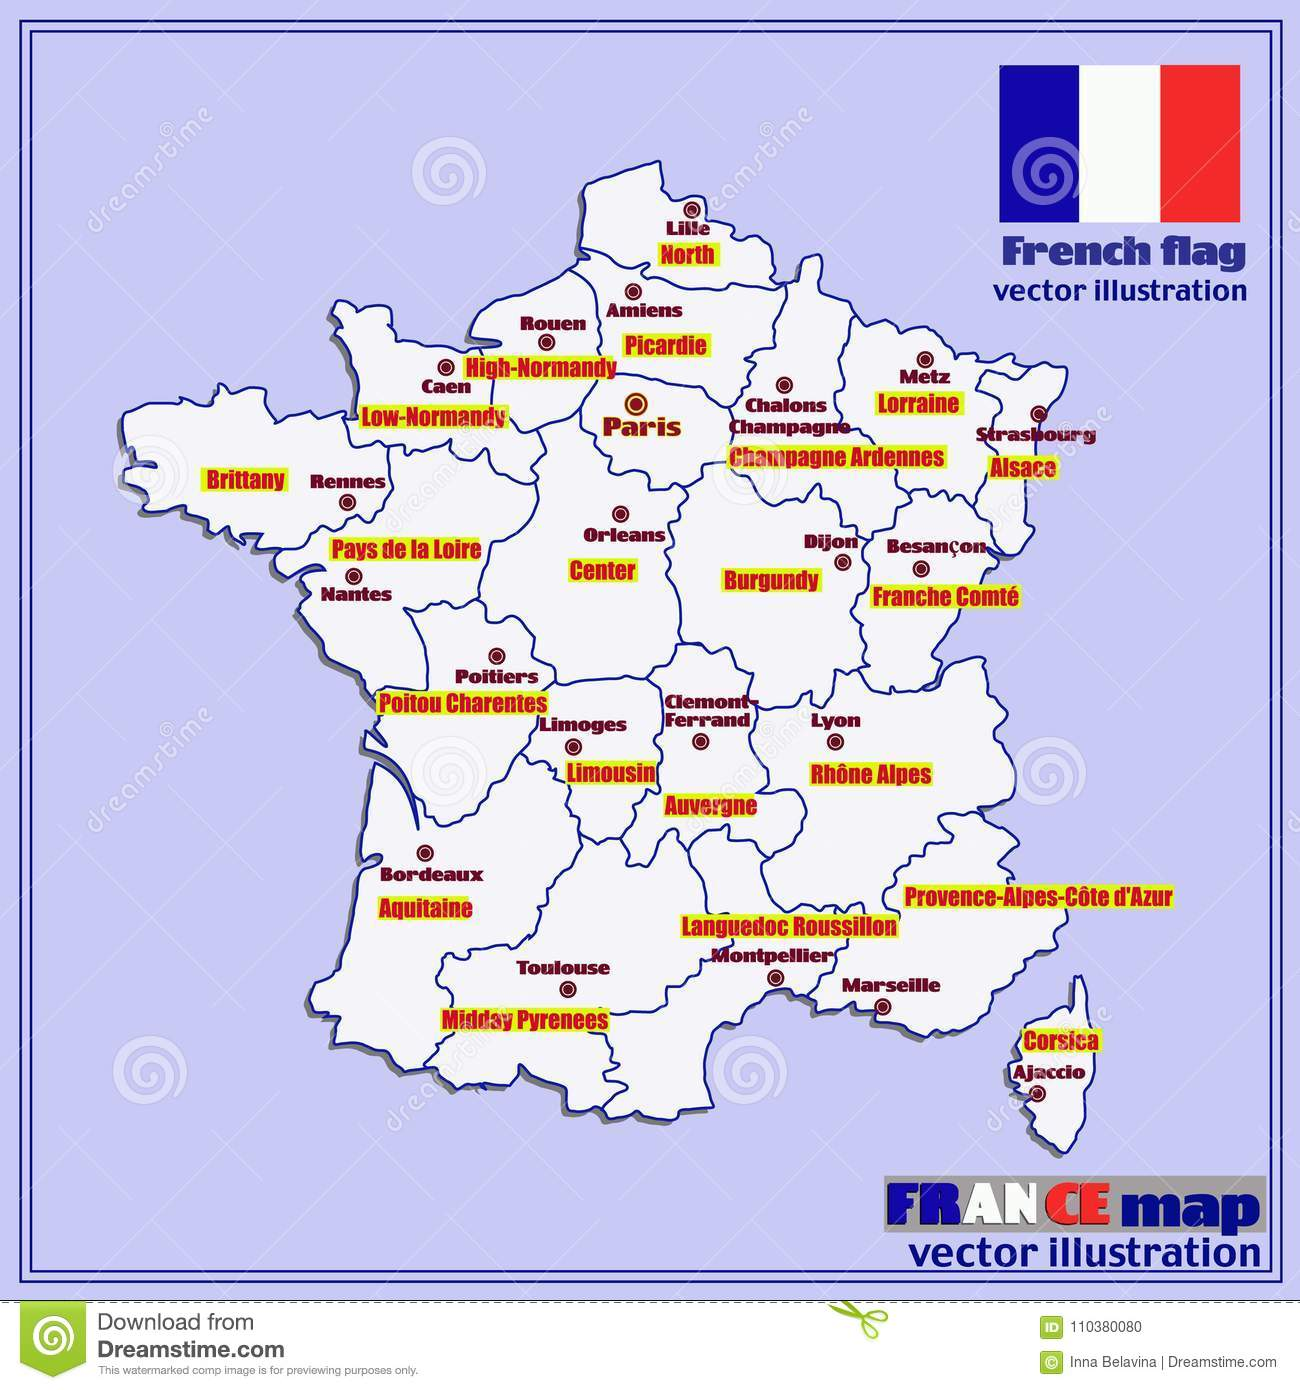 Map Of France Regions With Cities.Map Of France With French Regions Vector Stock Vector